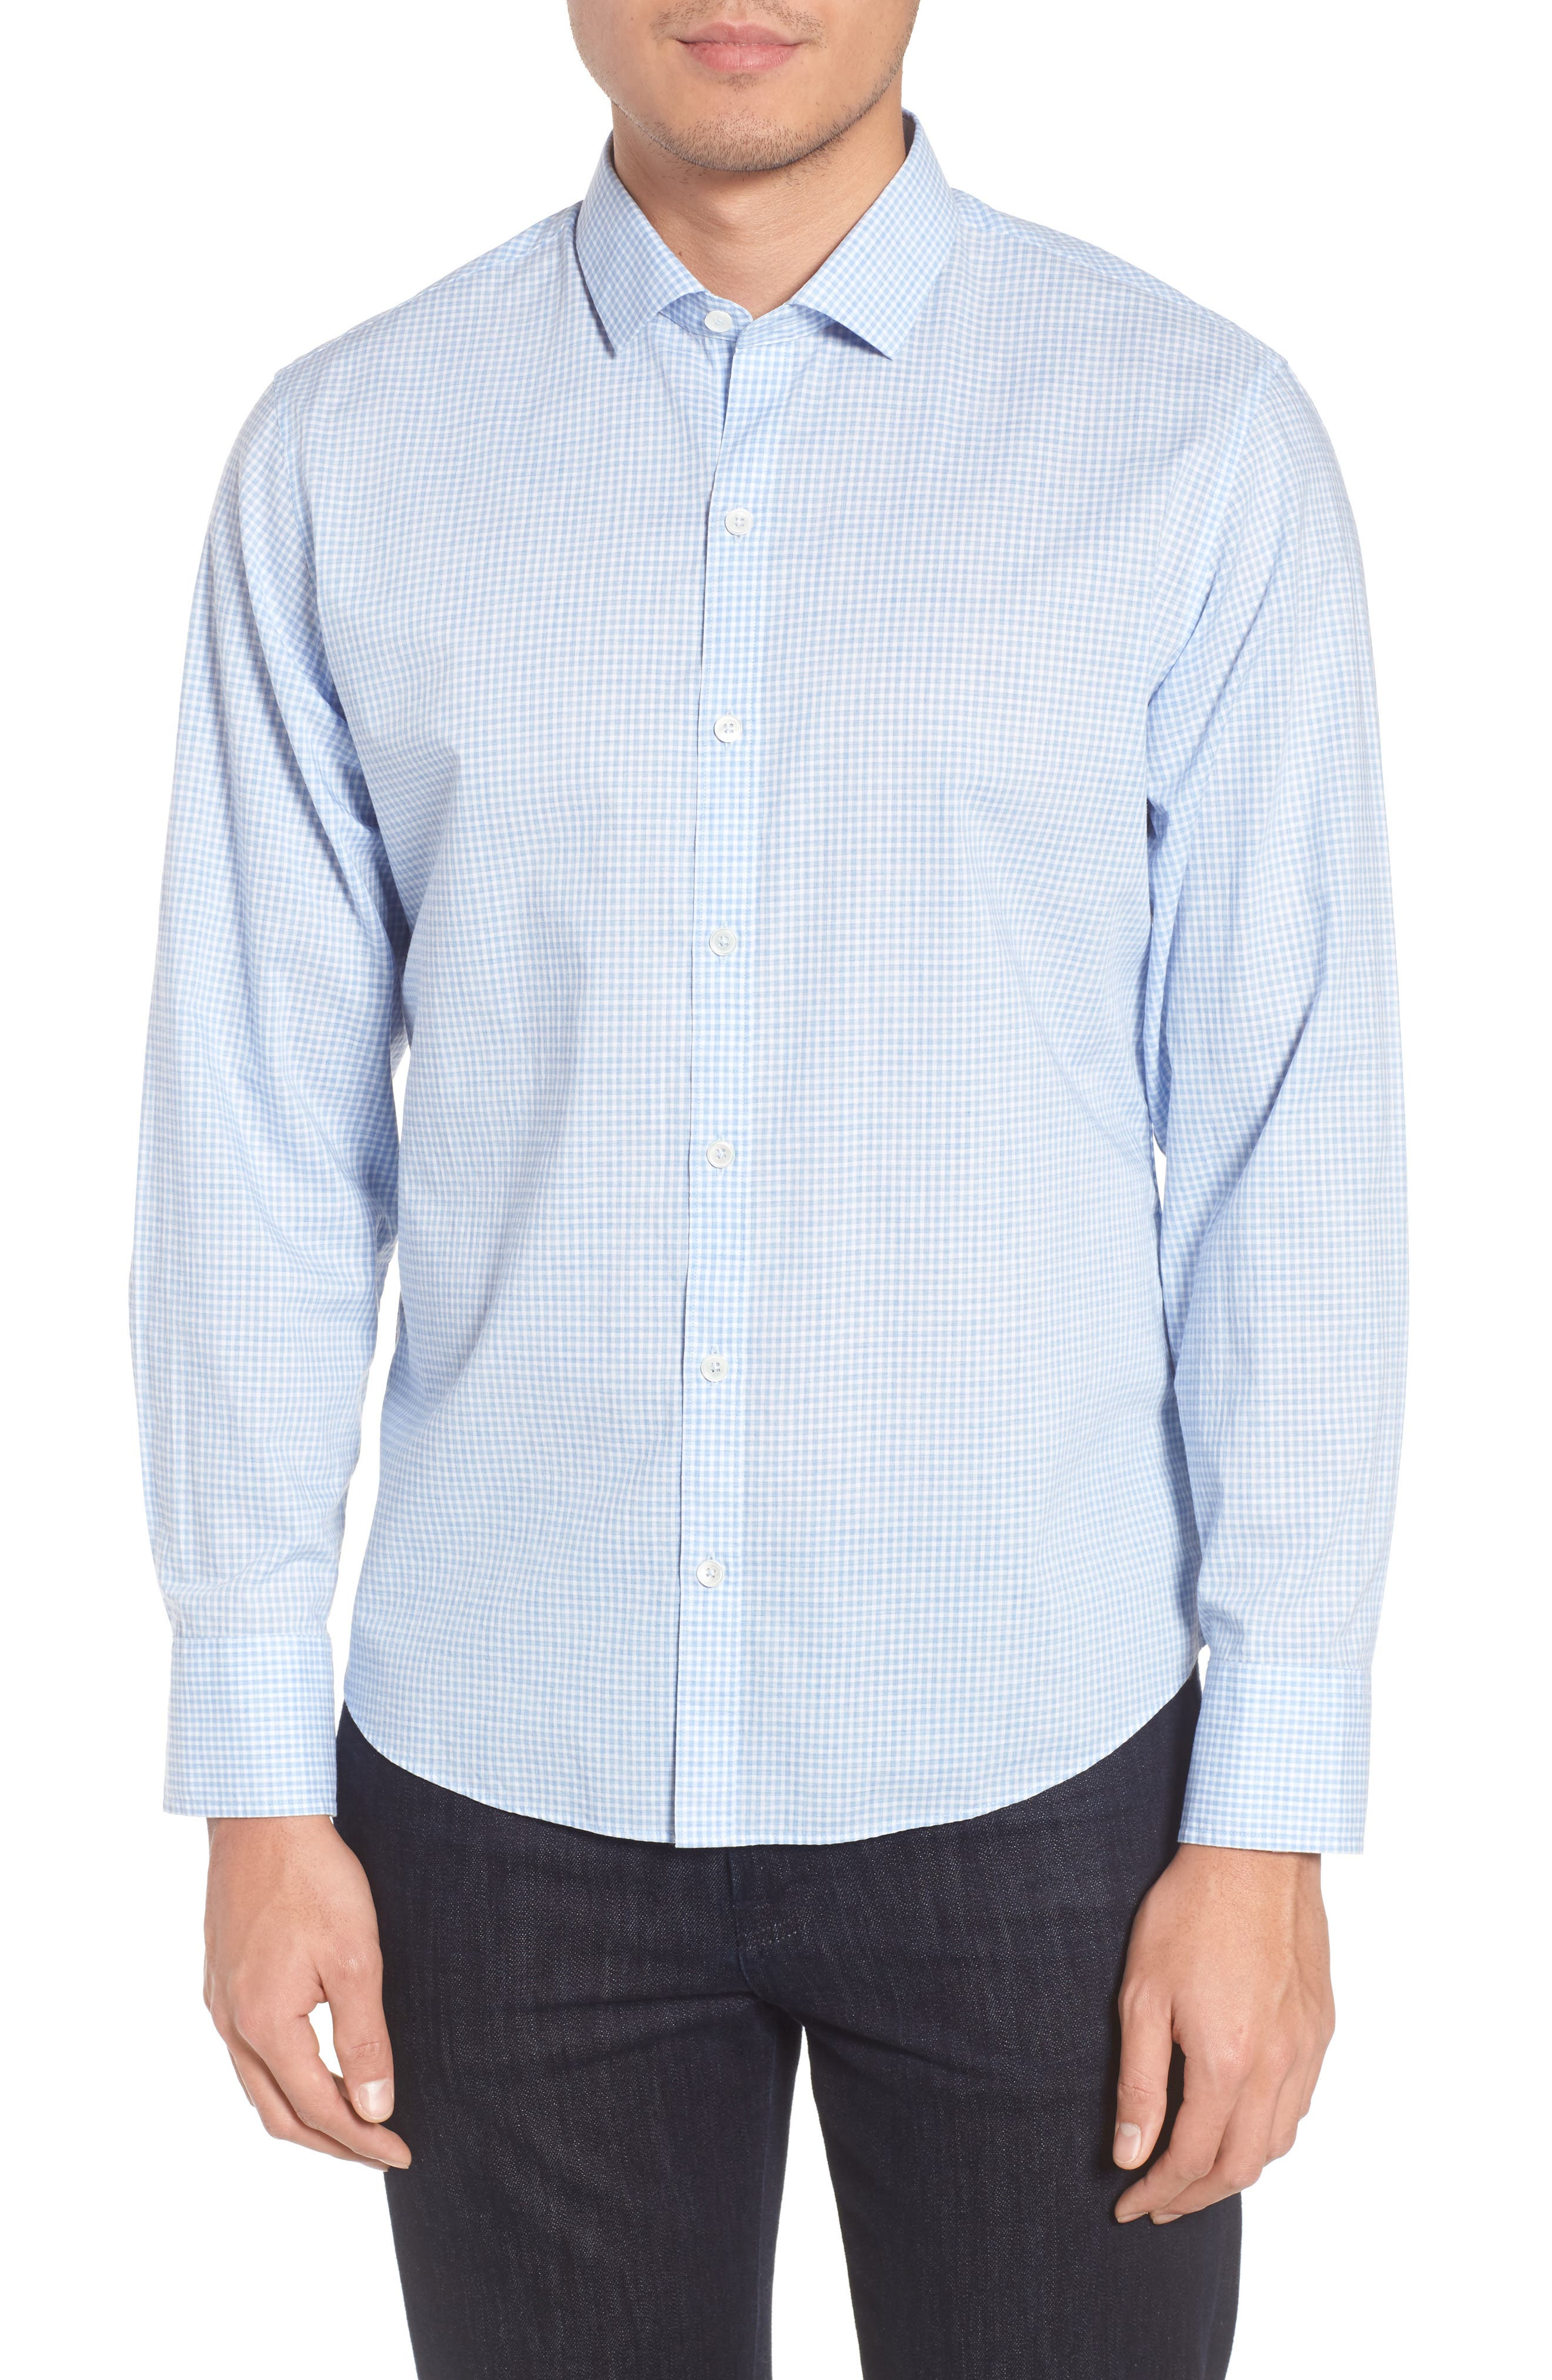 McGarry Gingham Sport Shirt,                             Main thumbnail 1, color,                             450